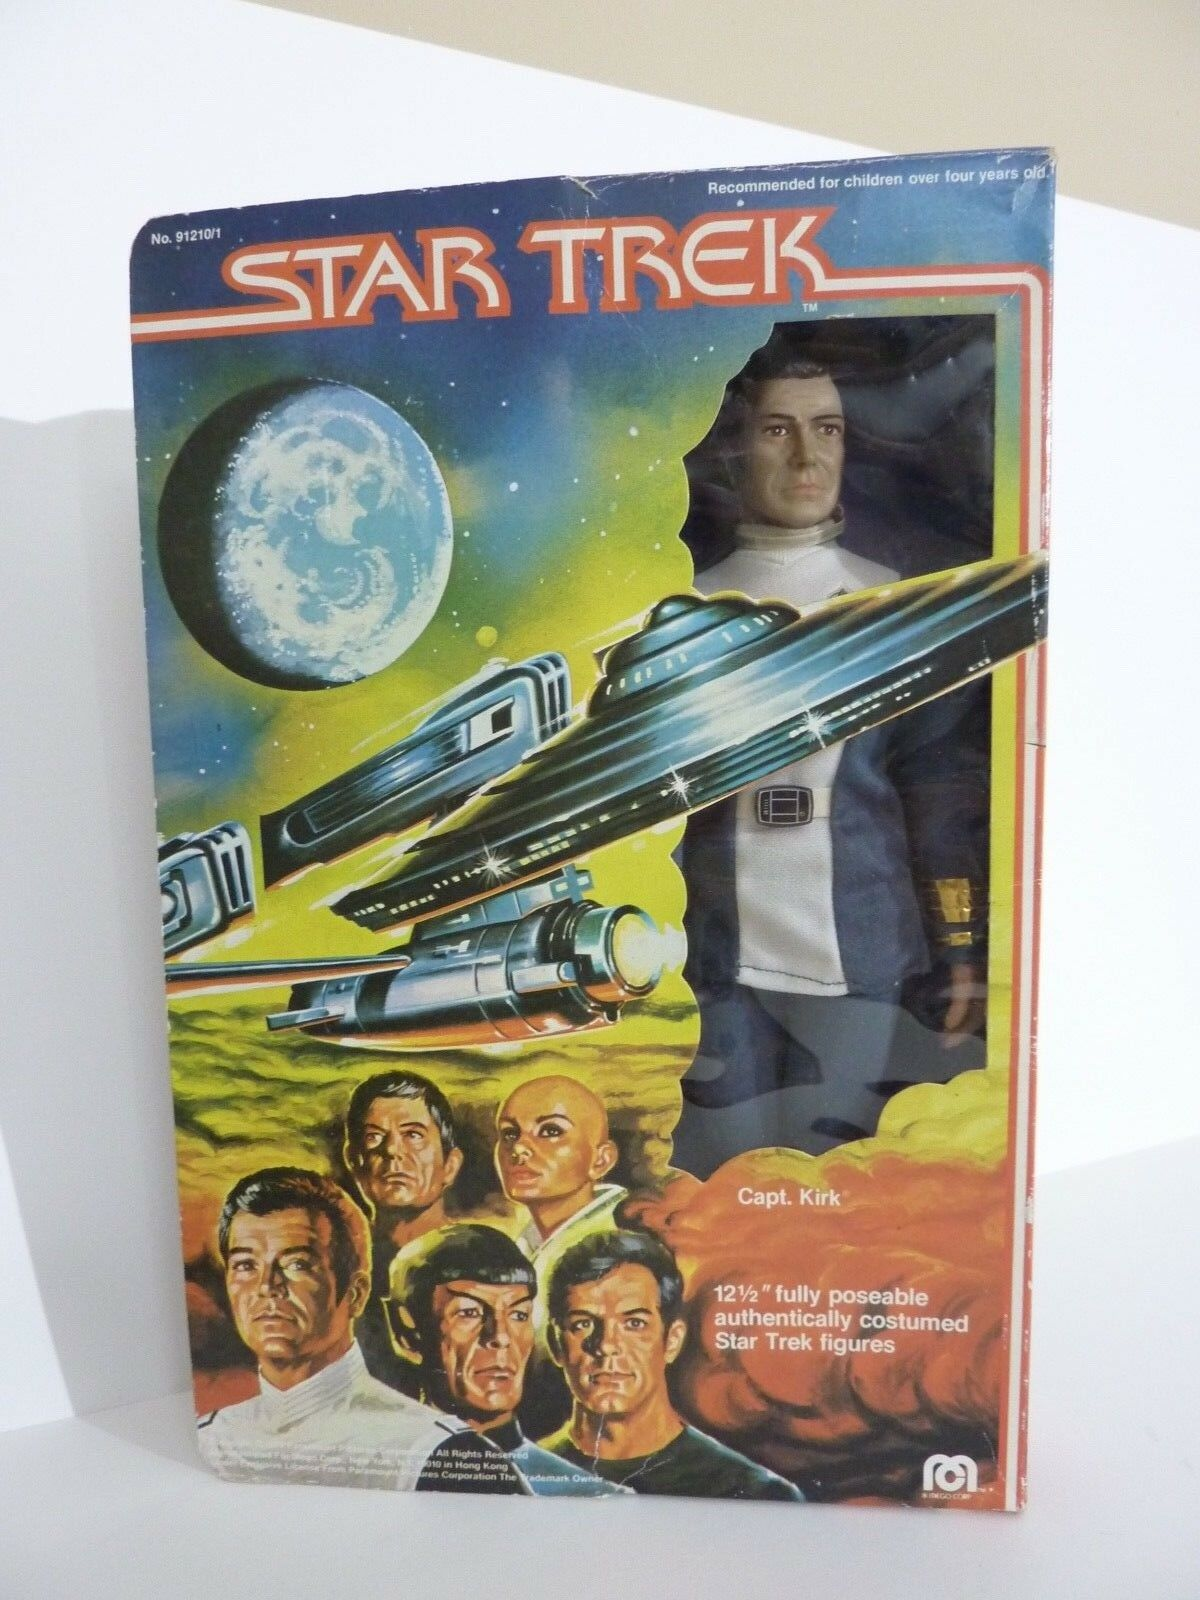 MEGO STAR TREK INCH THE MOTION PICTURE12 INCH TREK CAPTAIN KIRK IN BOX faa37f